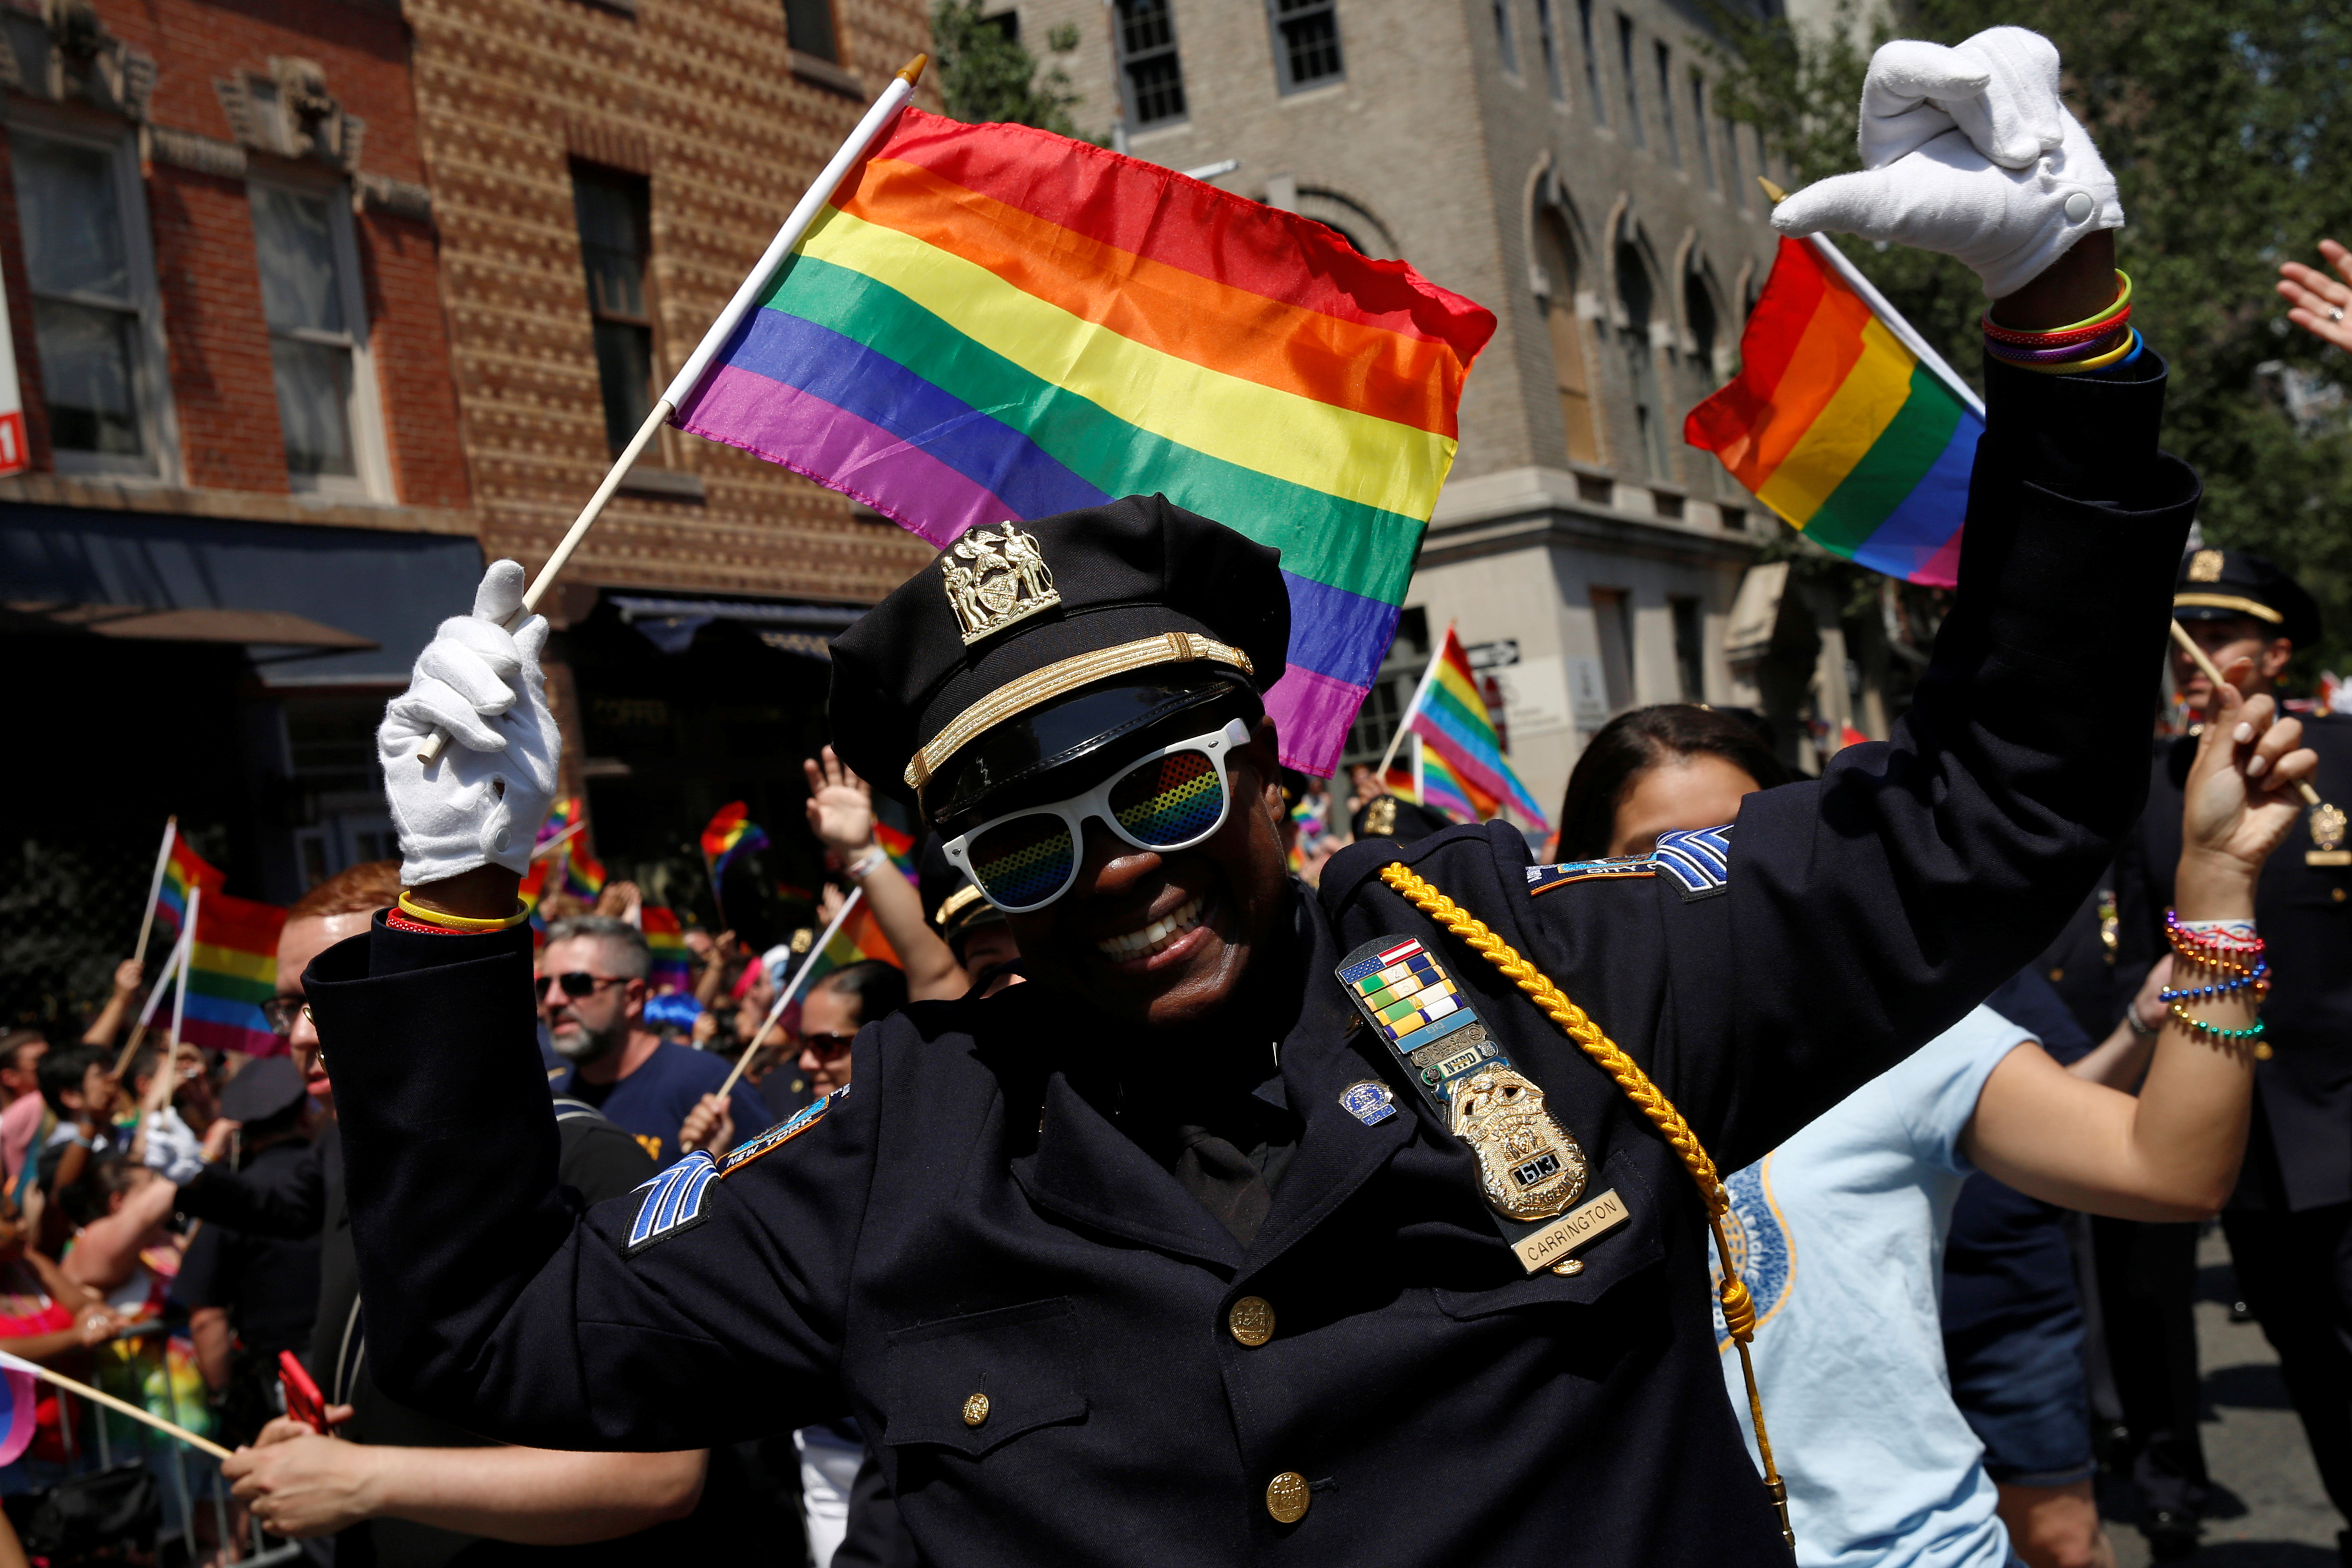 A New York City Police officer (NYPD) marches in the annual NYC Pride parade in New York